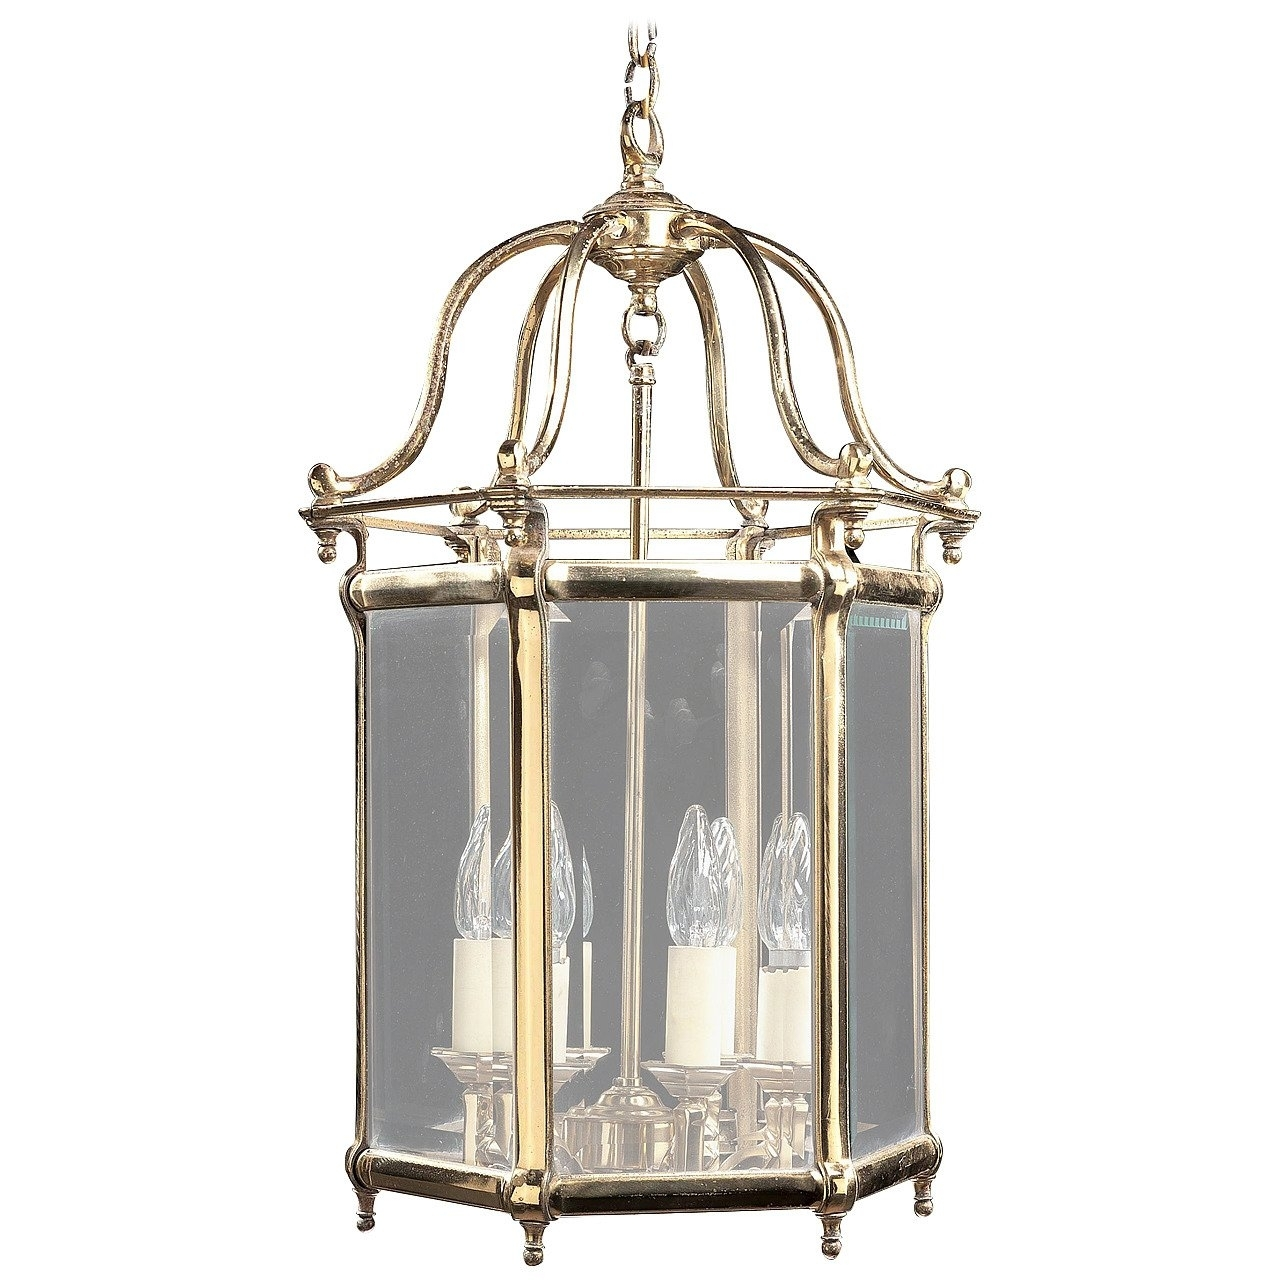 Brass Outdoor Lantern Porch Light Exterior Applique Sconce, 20Th throughout Jumbo Outdoor Lanterns (Image 4 of 20)